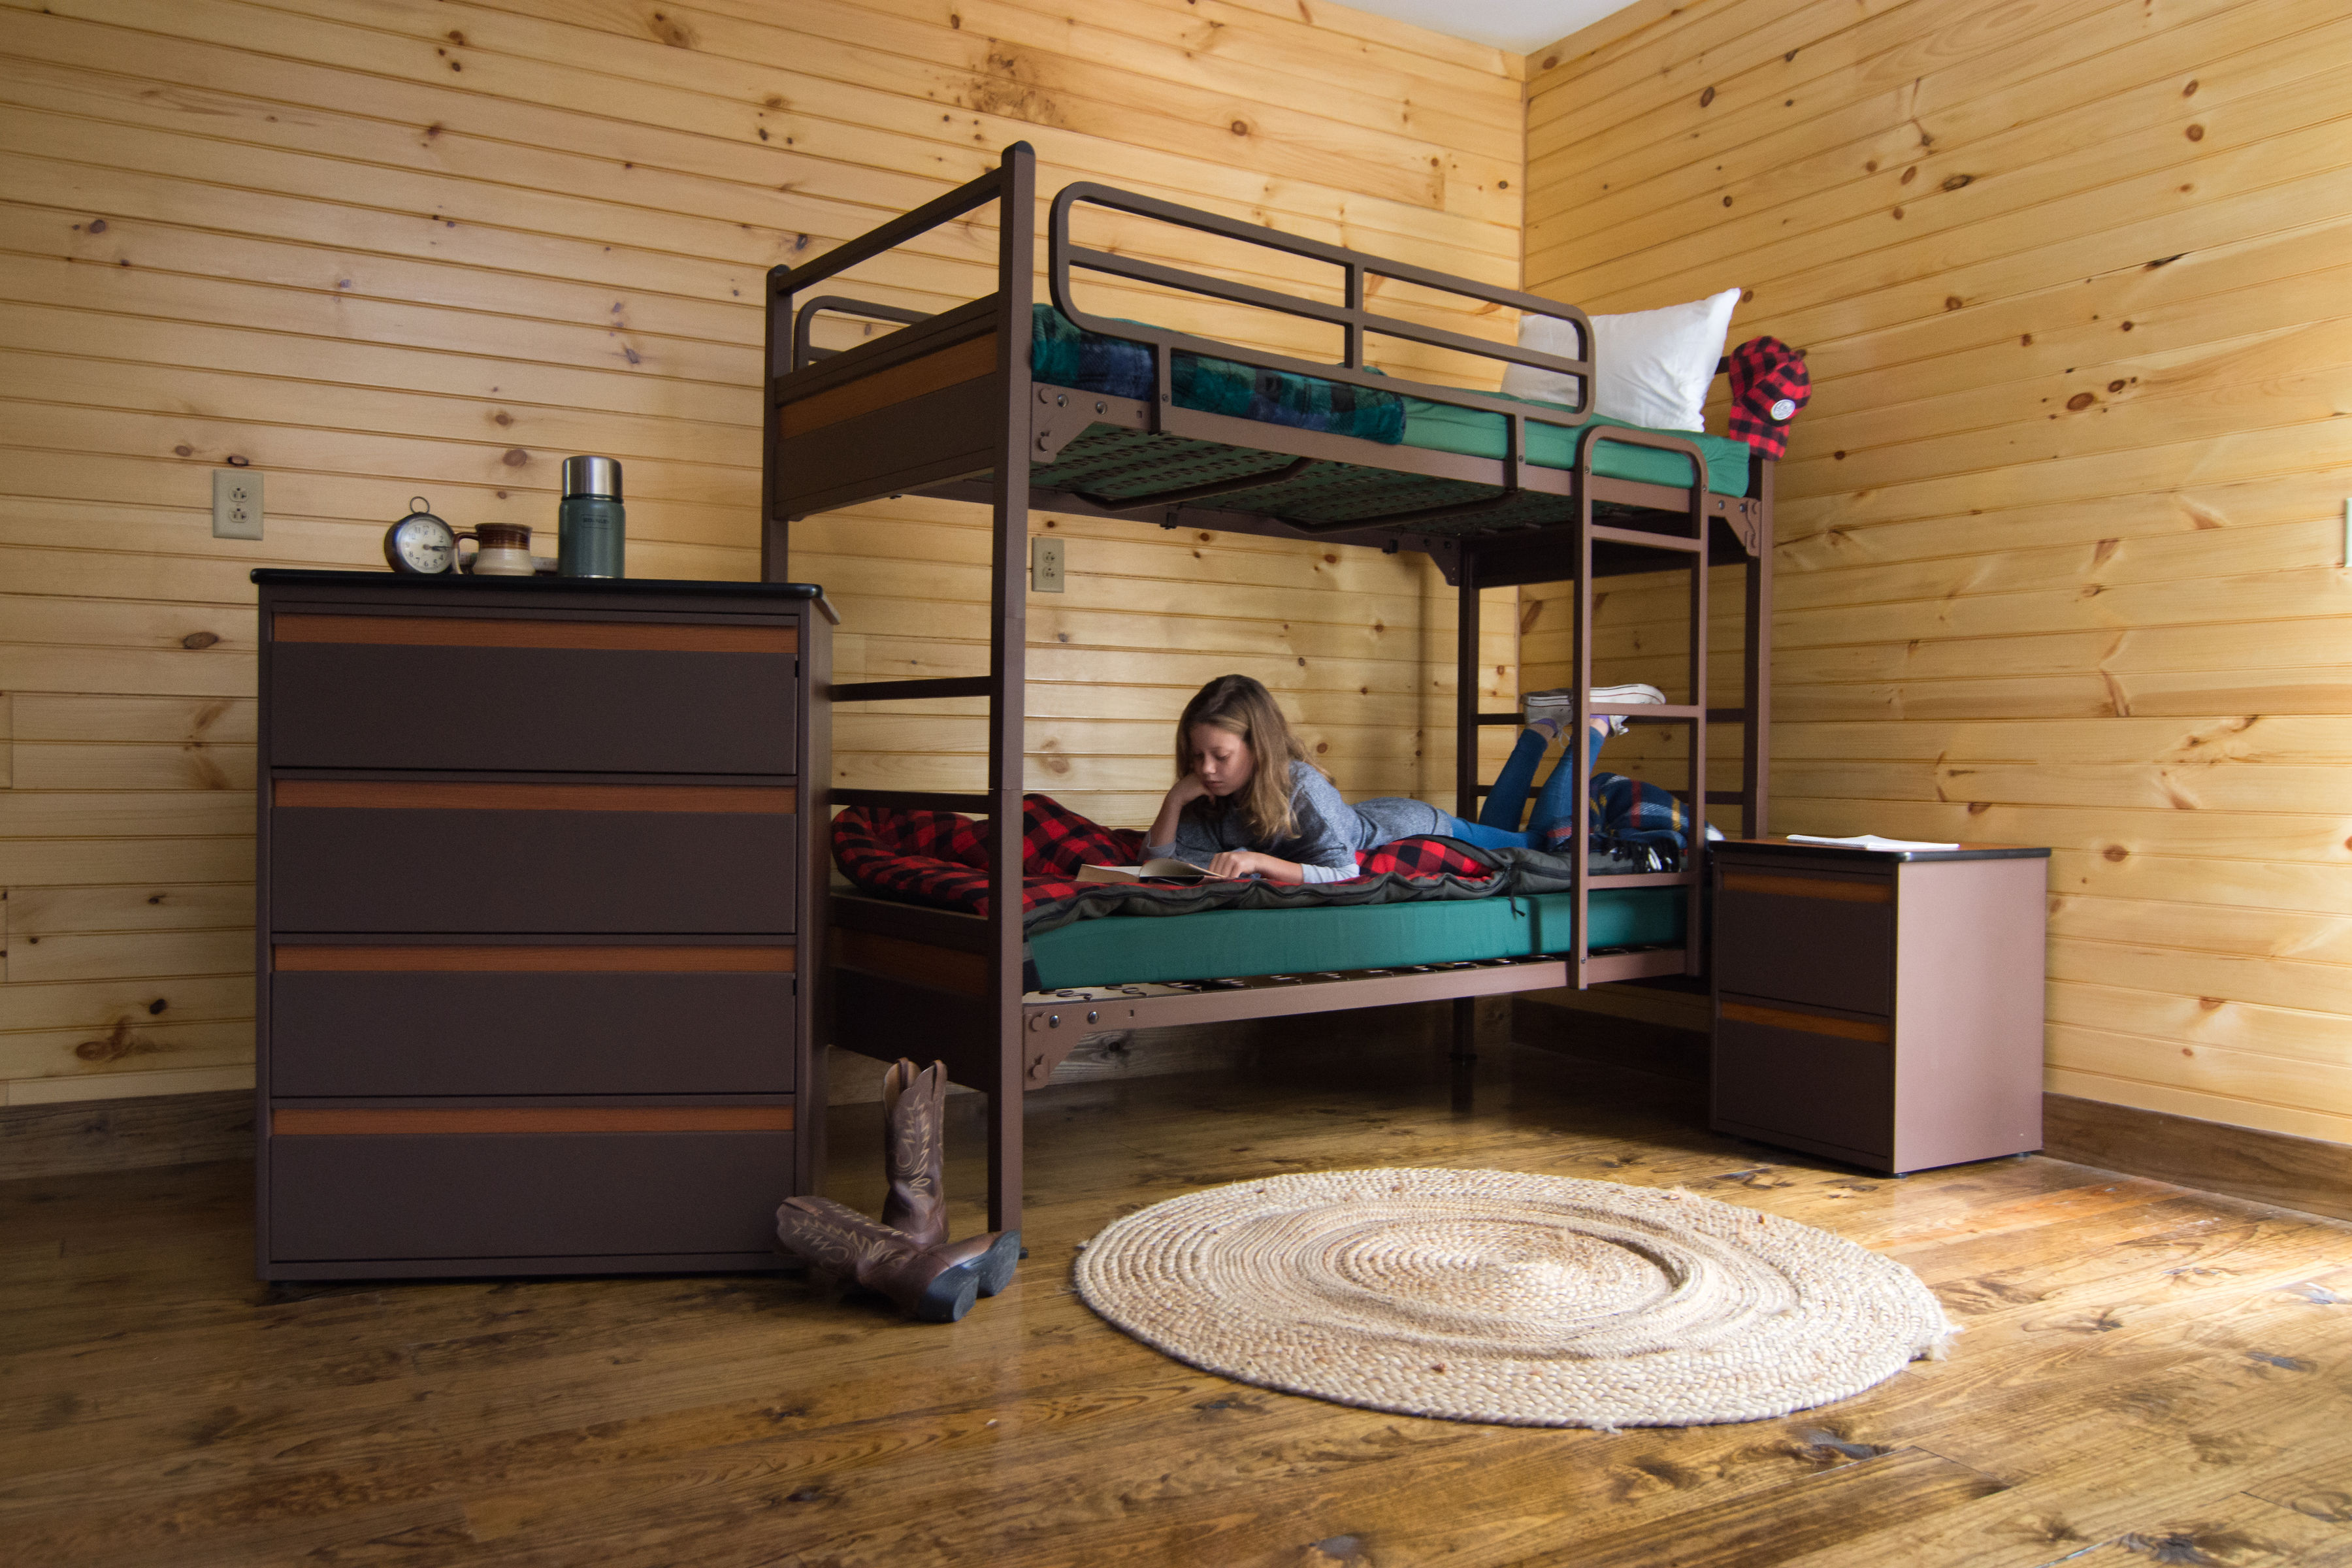 3 Things To Look For In Shelter Furniture To Create A Sense Of Home